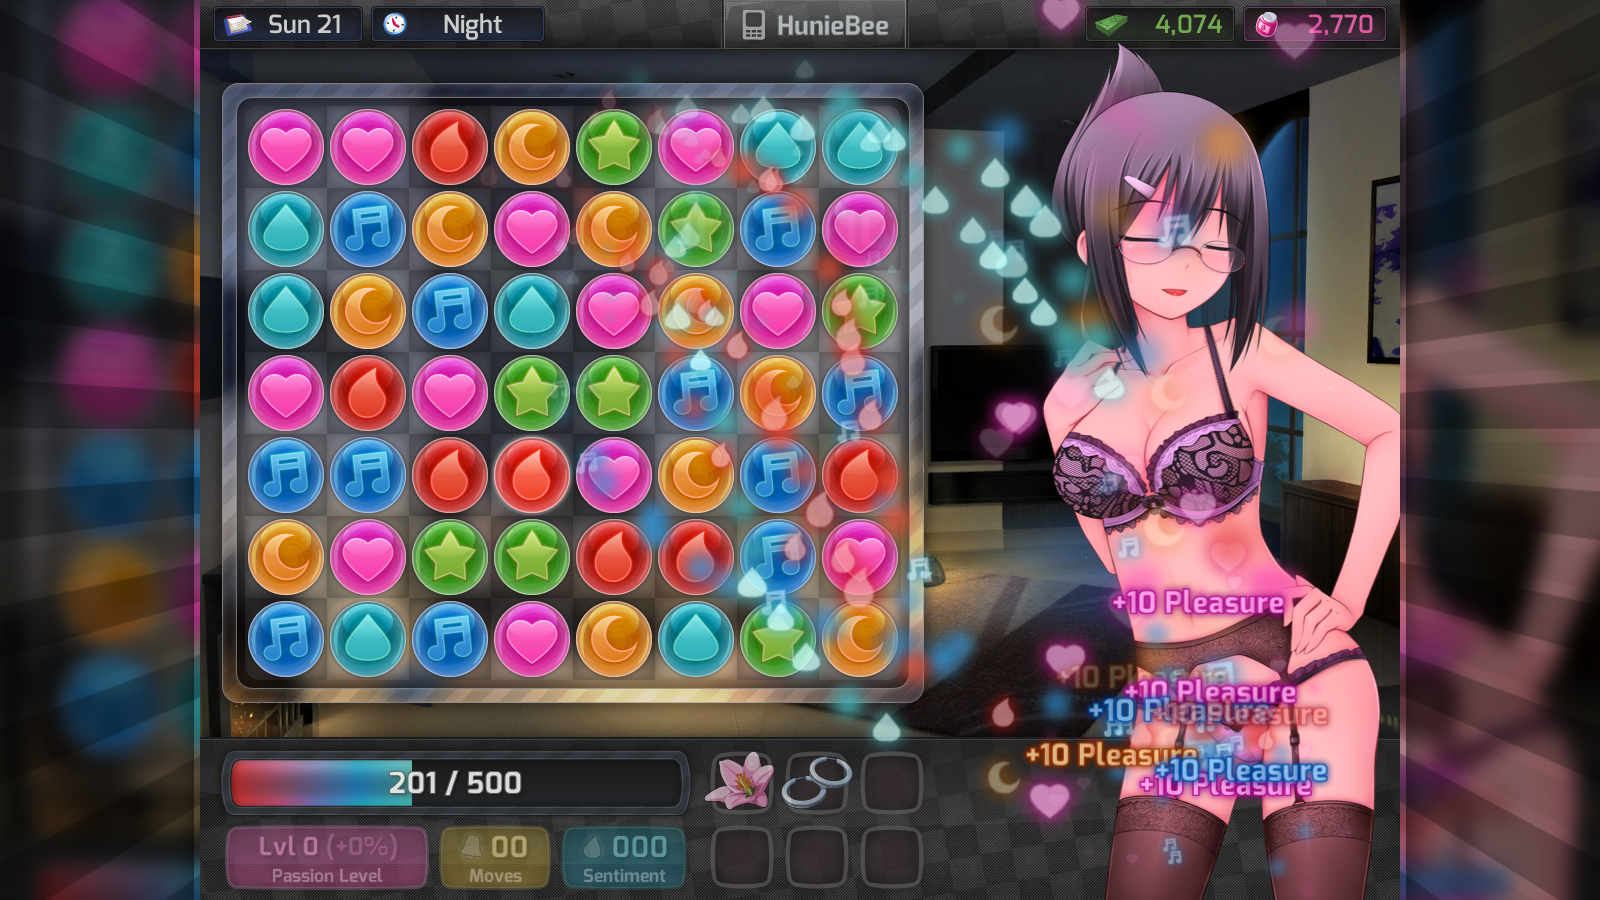 Pictures hunie pop Abia/Image Gallery